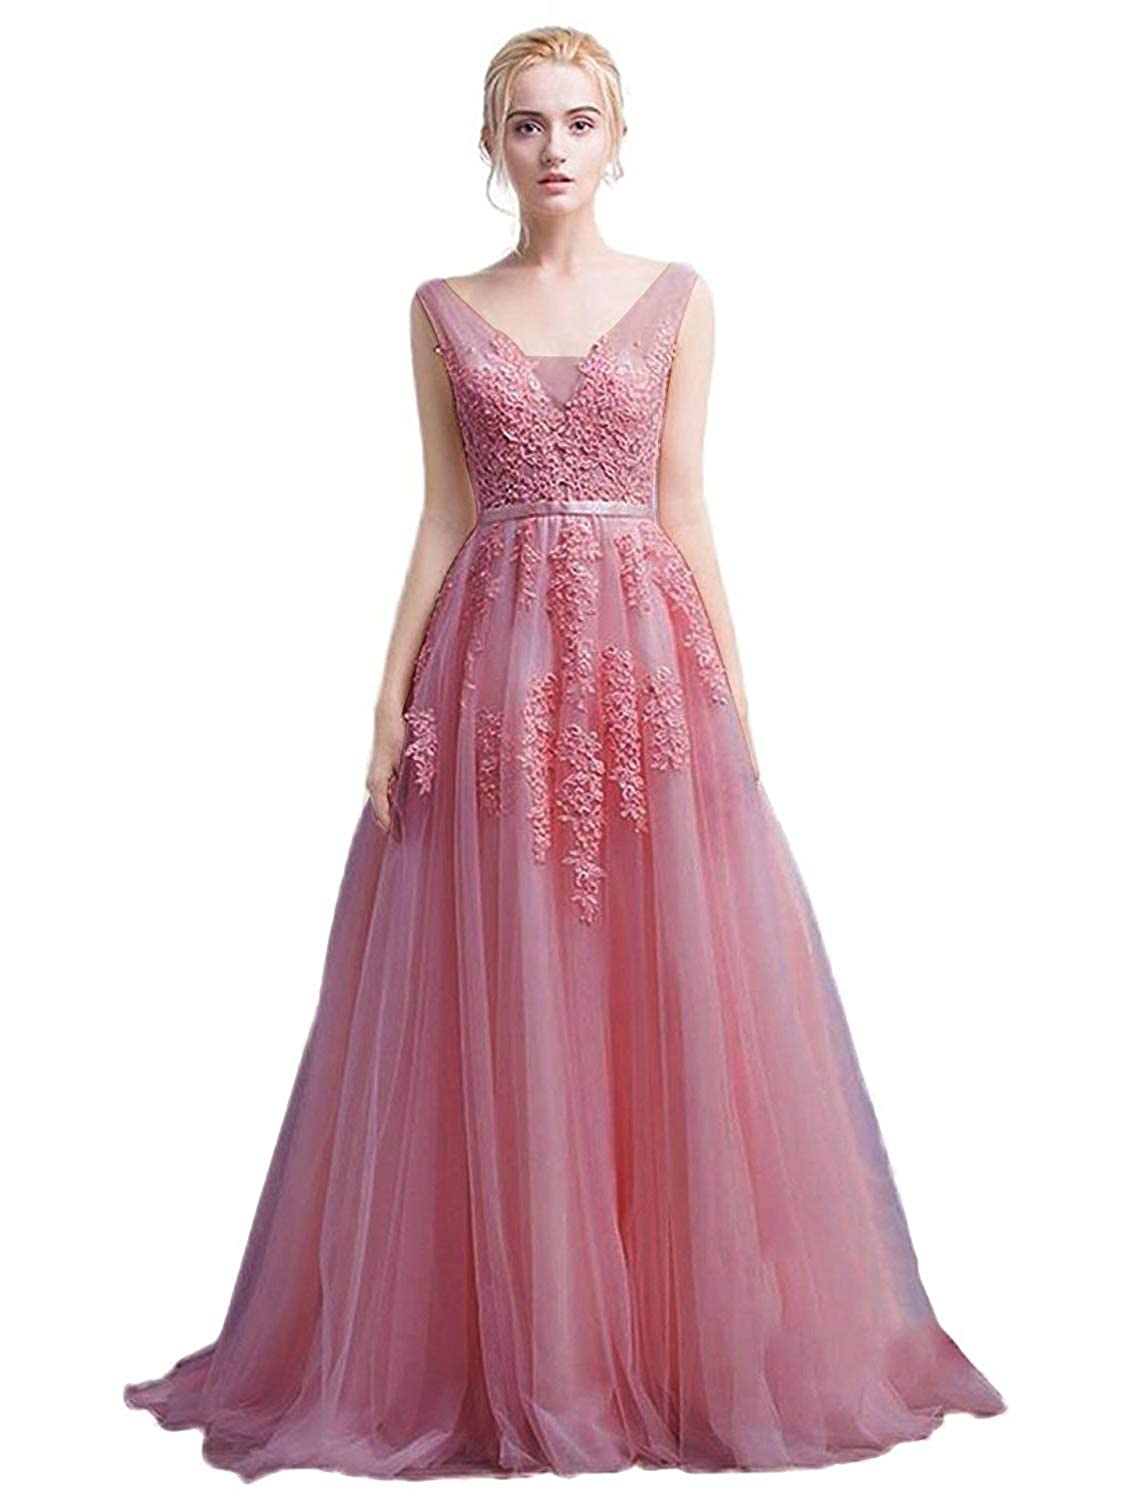 5b2ae4dc440 Amazon.com  Babyonline Women s Double V-Neck Tulle Appliques Long Evening  Cocktail Gowns  Clothing